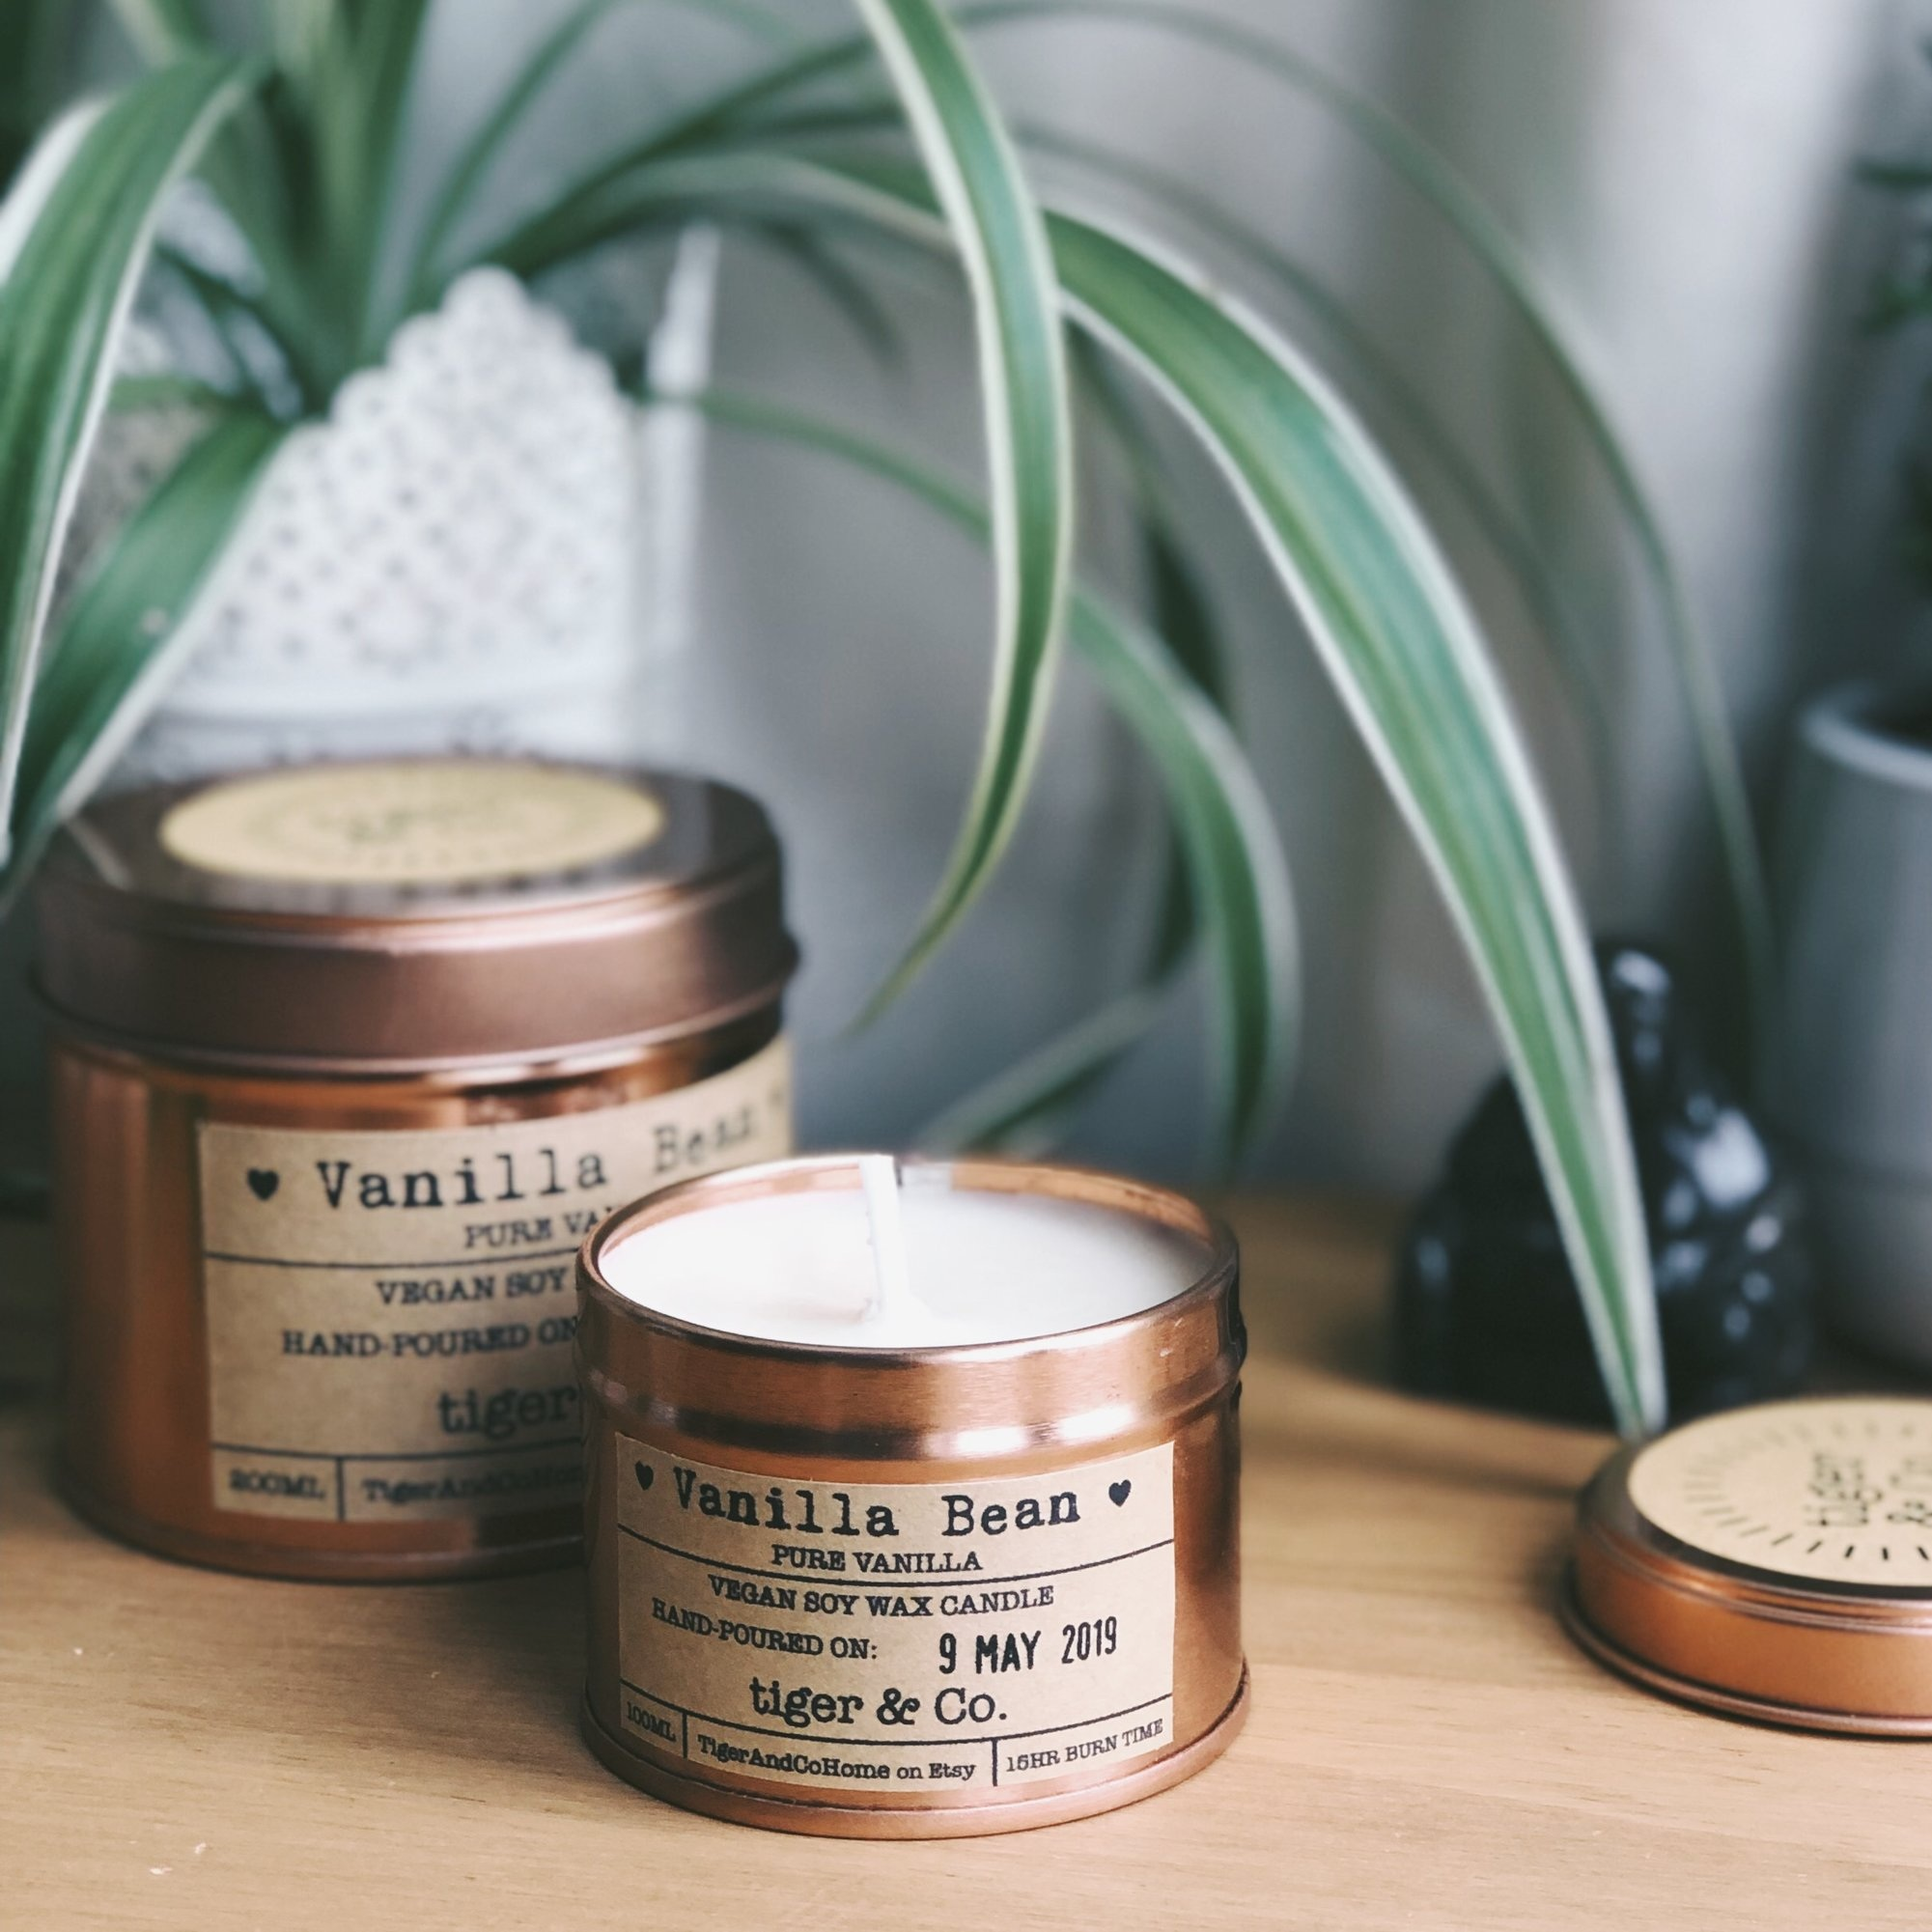 TIGER & CO. - SOY WAX CANDLES ANDSLOW HOMEWARE